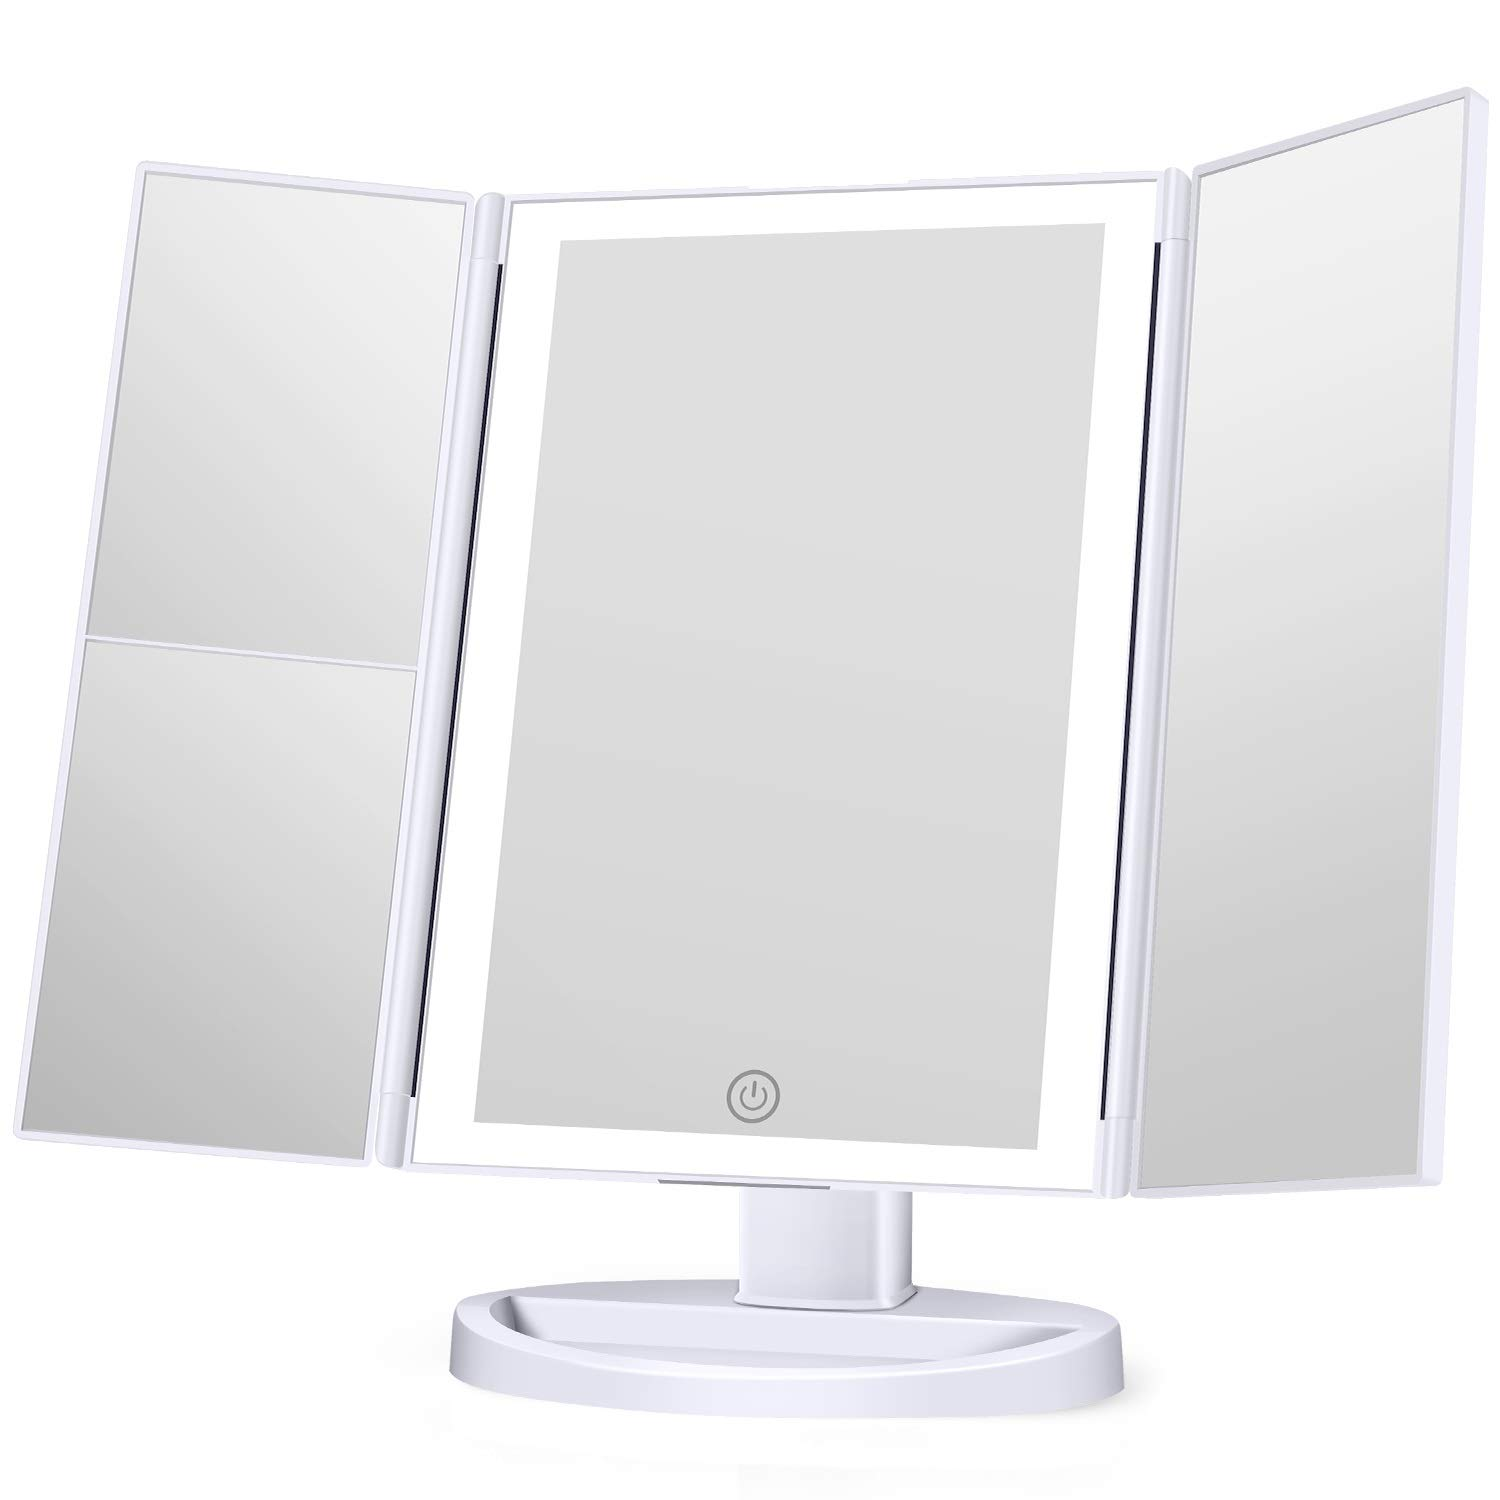 Makeup Mirror with lights, 3 Color Lighting Vanity Mirror with 1x 2x 3x Magnification, Touch Screen Switch, 180 Degree Rotation Rotation, Dual Power Supply, Portable Trifold Mirror